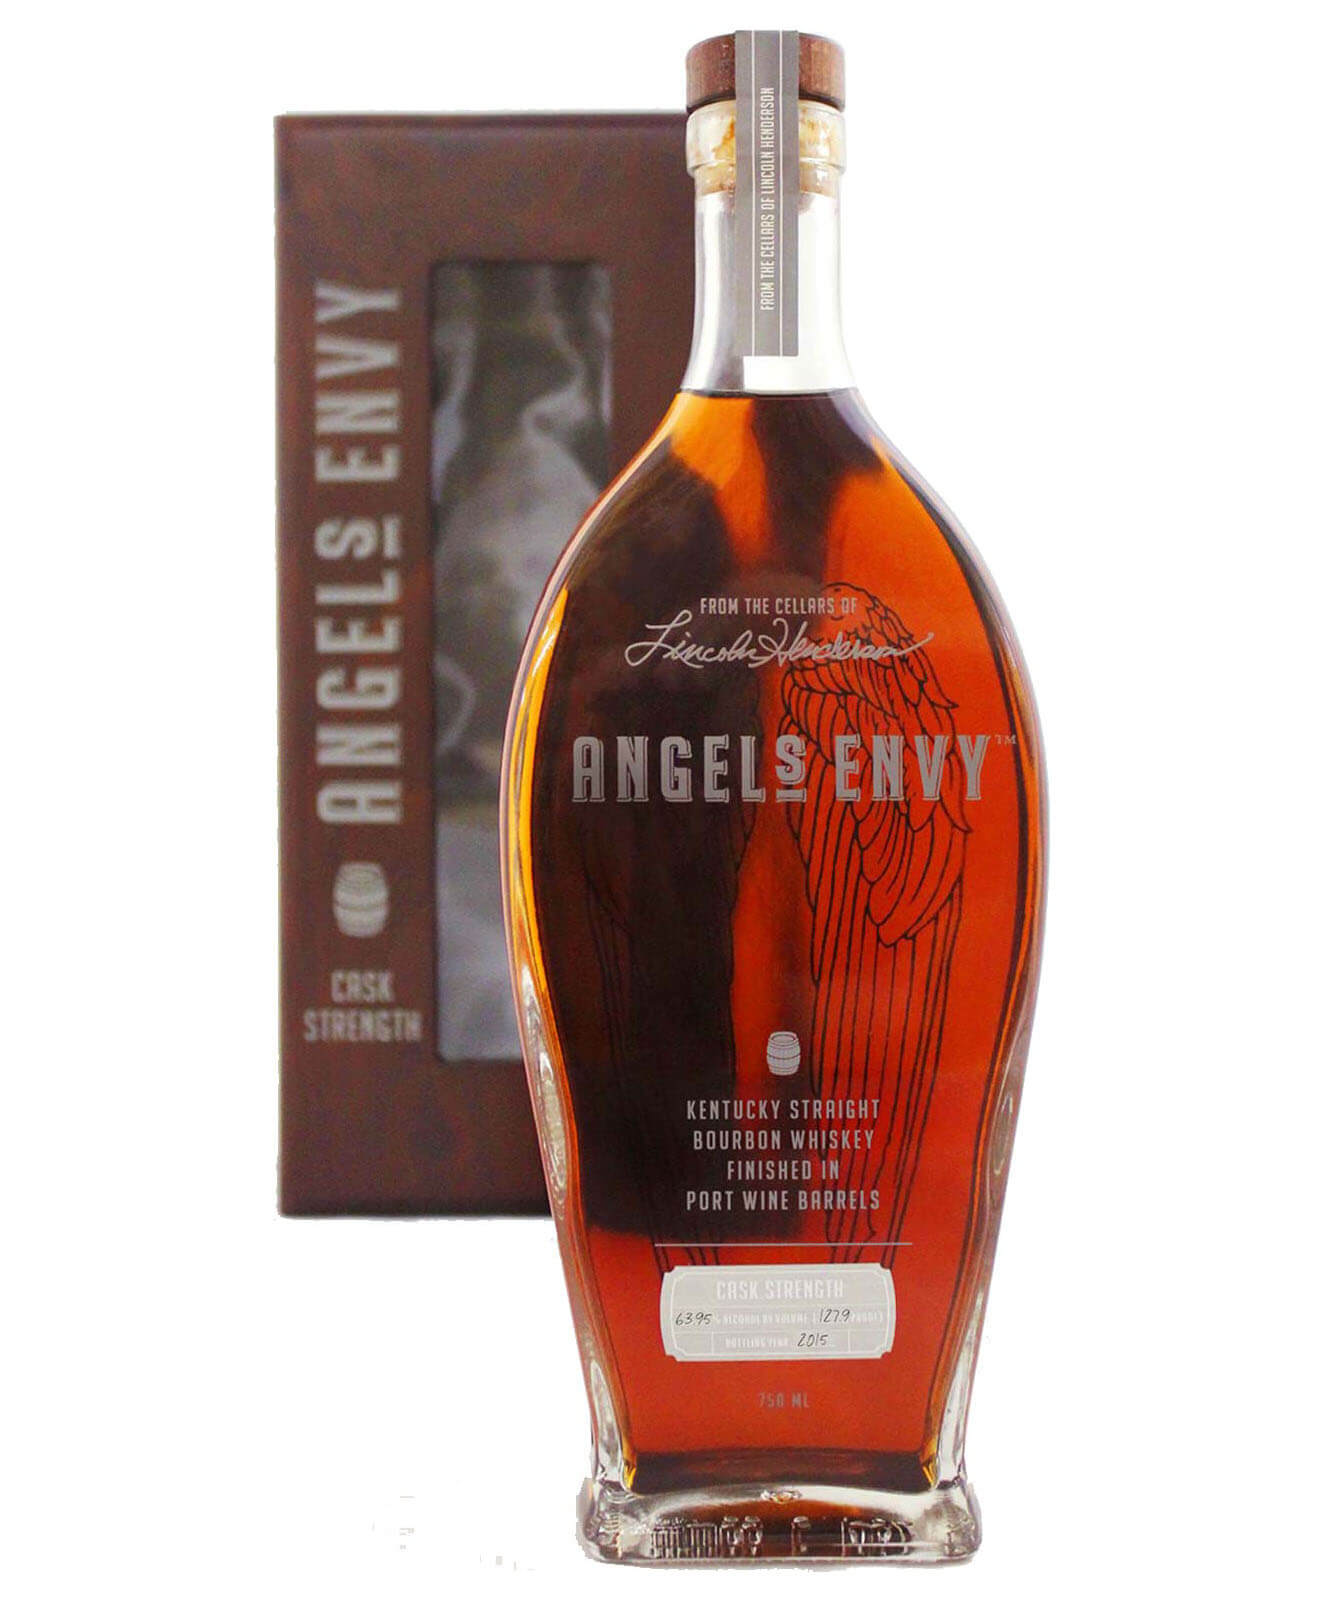 Angel's Envy Cask Strength, bottle and package on white